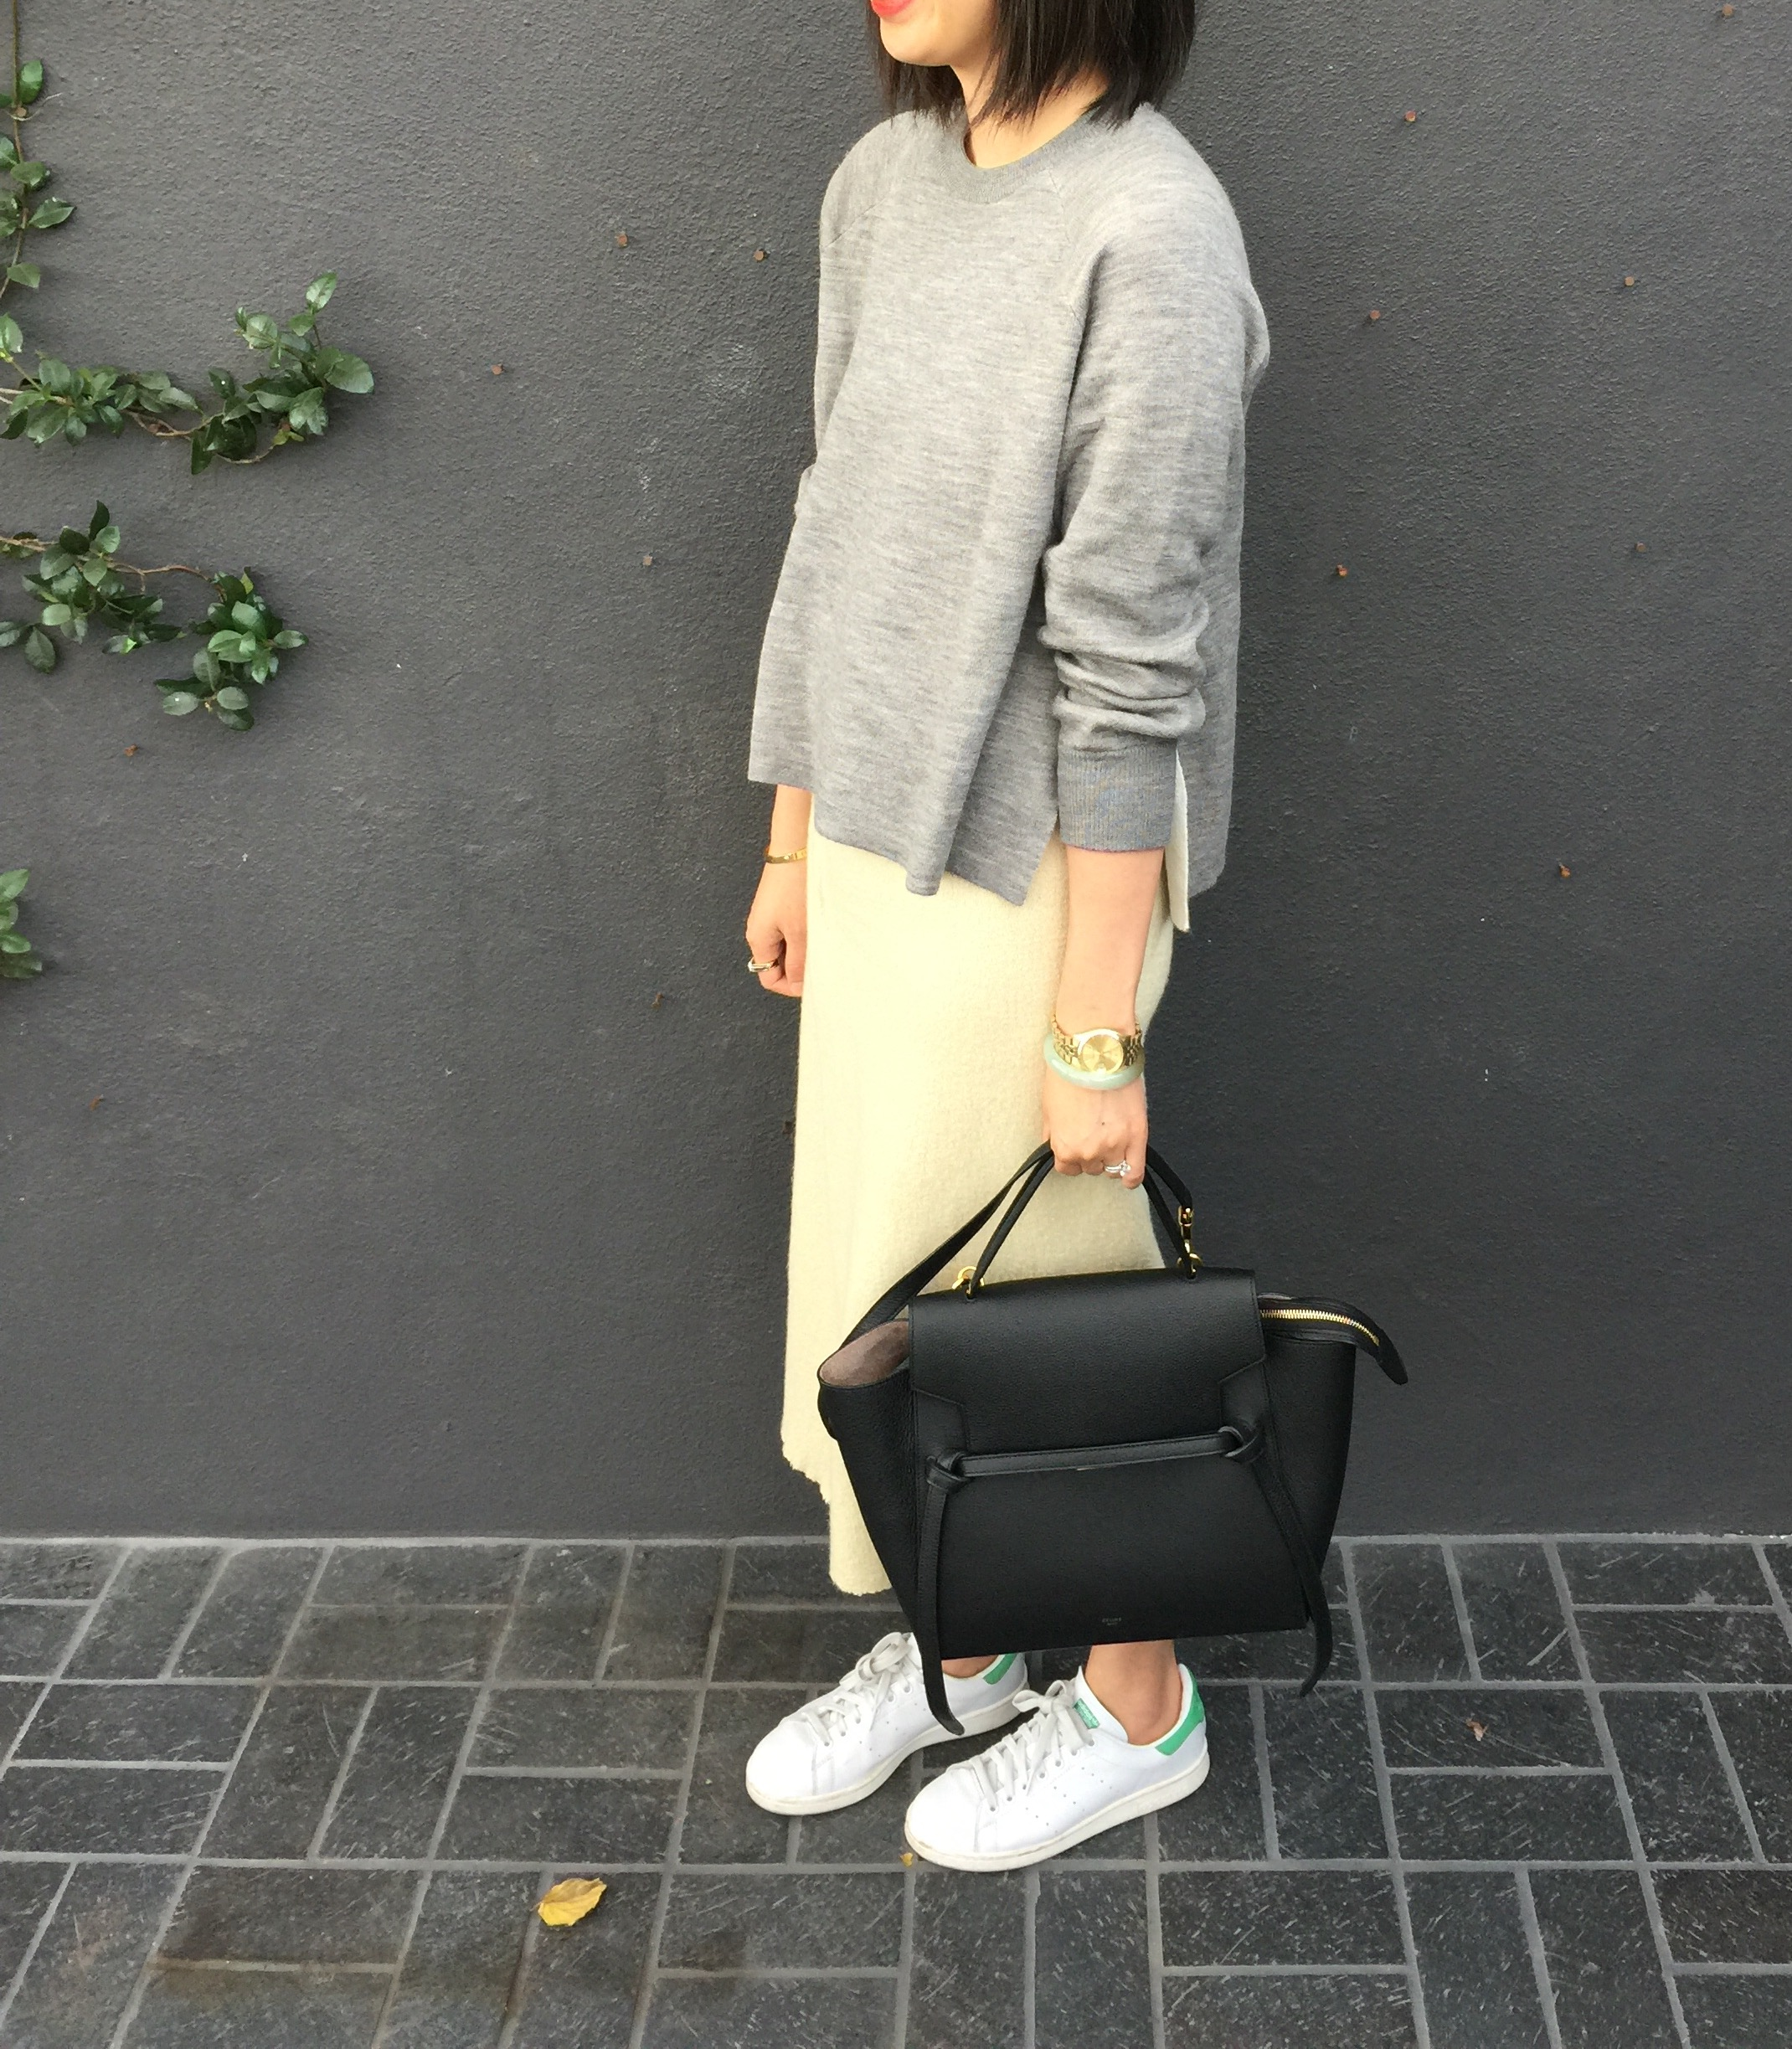 celine purses online - what helen wore today